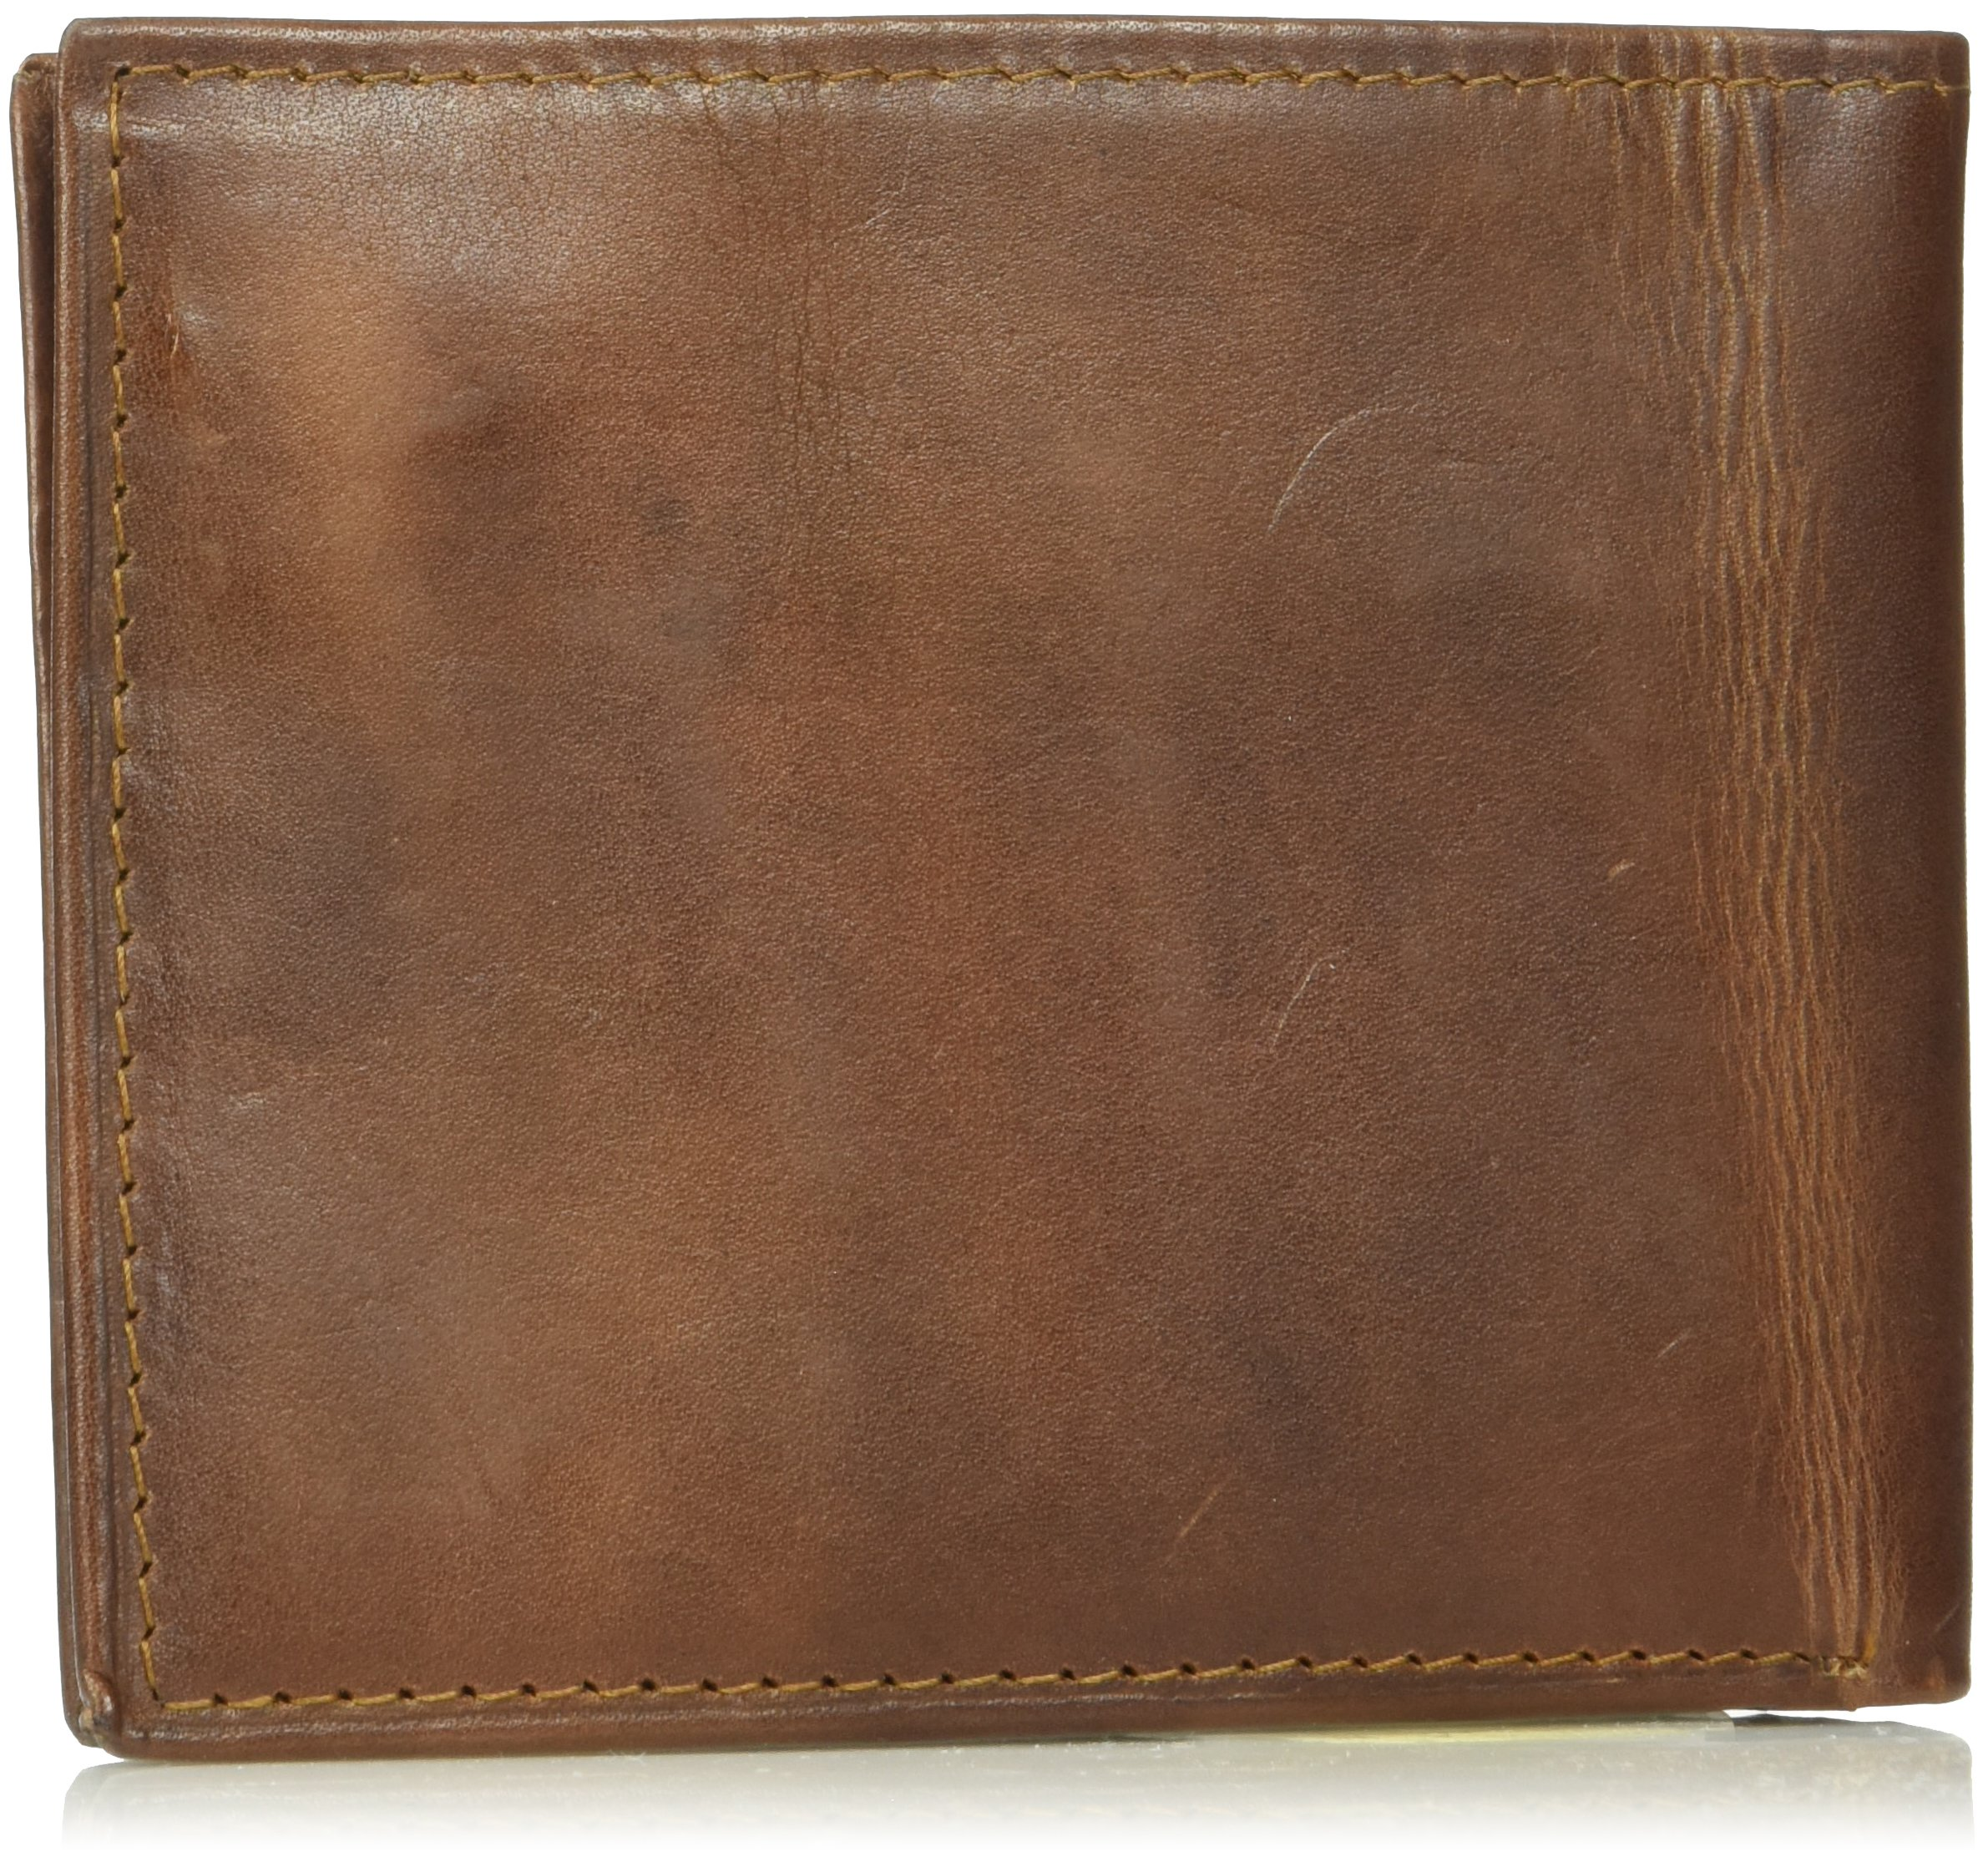 Guess Men s Leather Slim Bifold Wallet, tan, One Size - 31GU130015   Wallets    Clothing, Shoes   Jewelry - tibs c5897e42fc